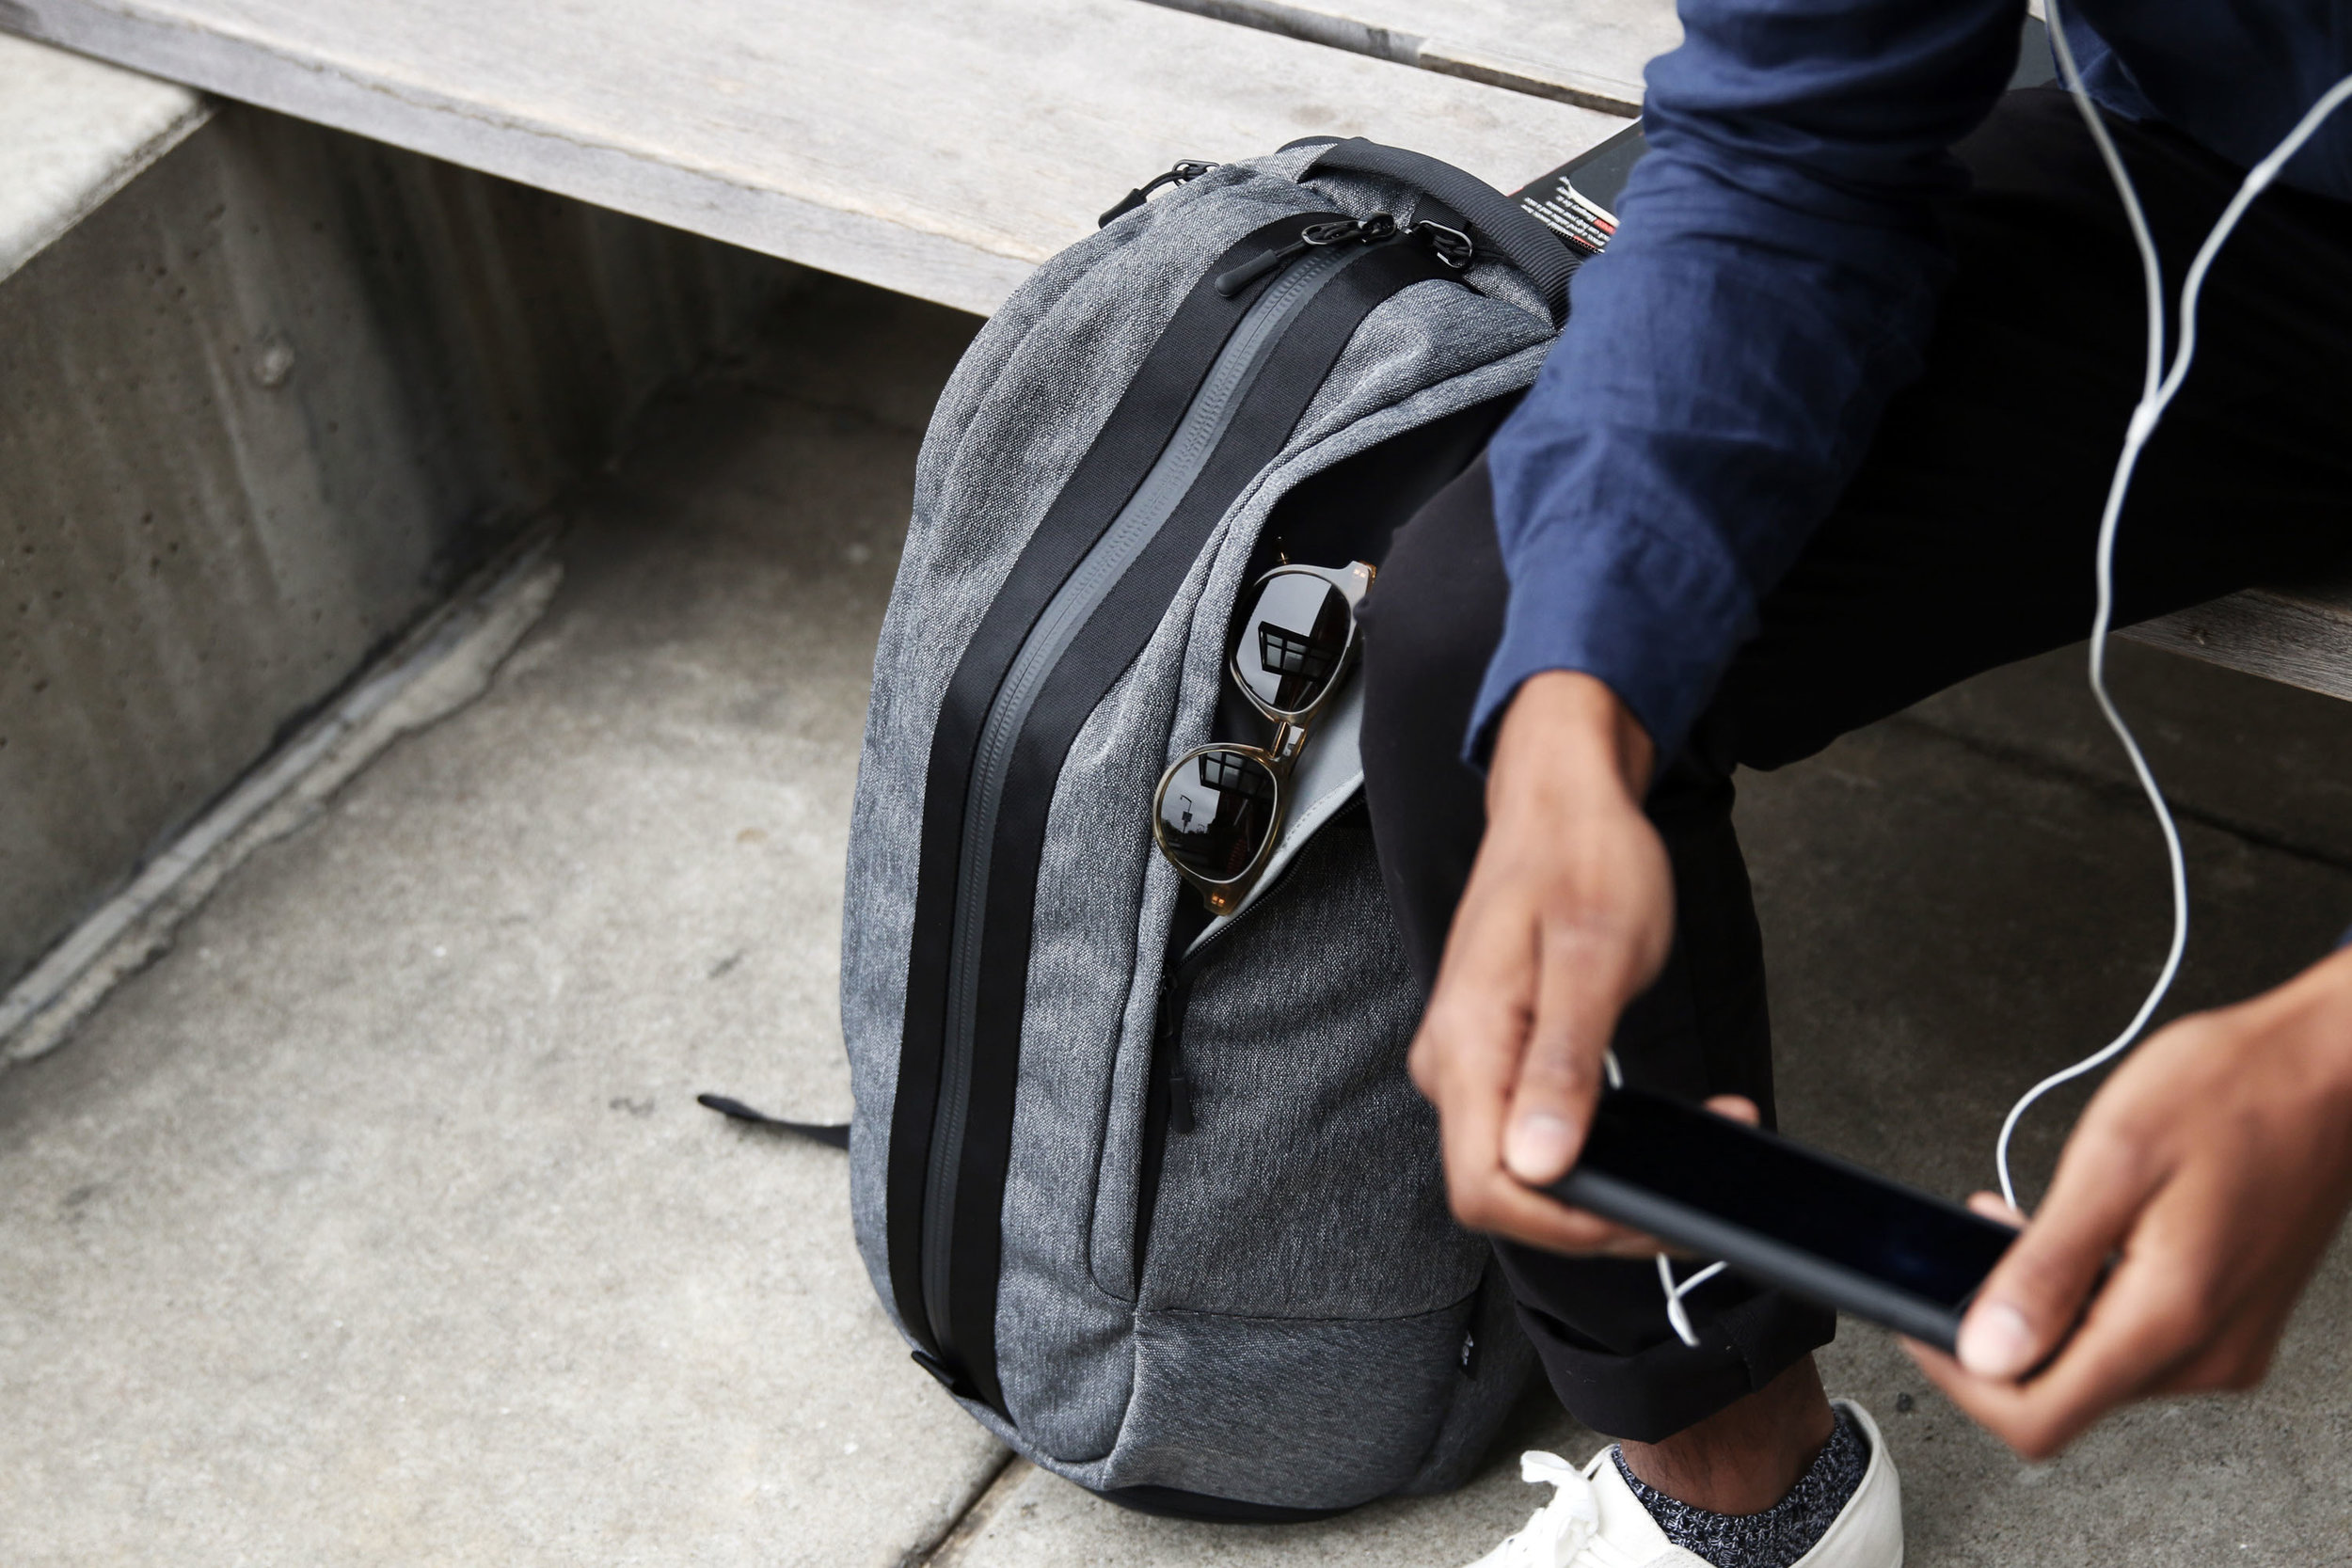 Duffel Pack   A New Kind of Bag for the Gym and Office.